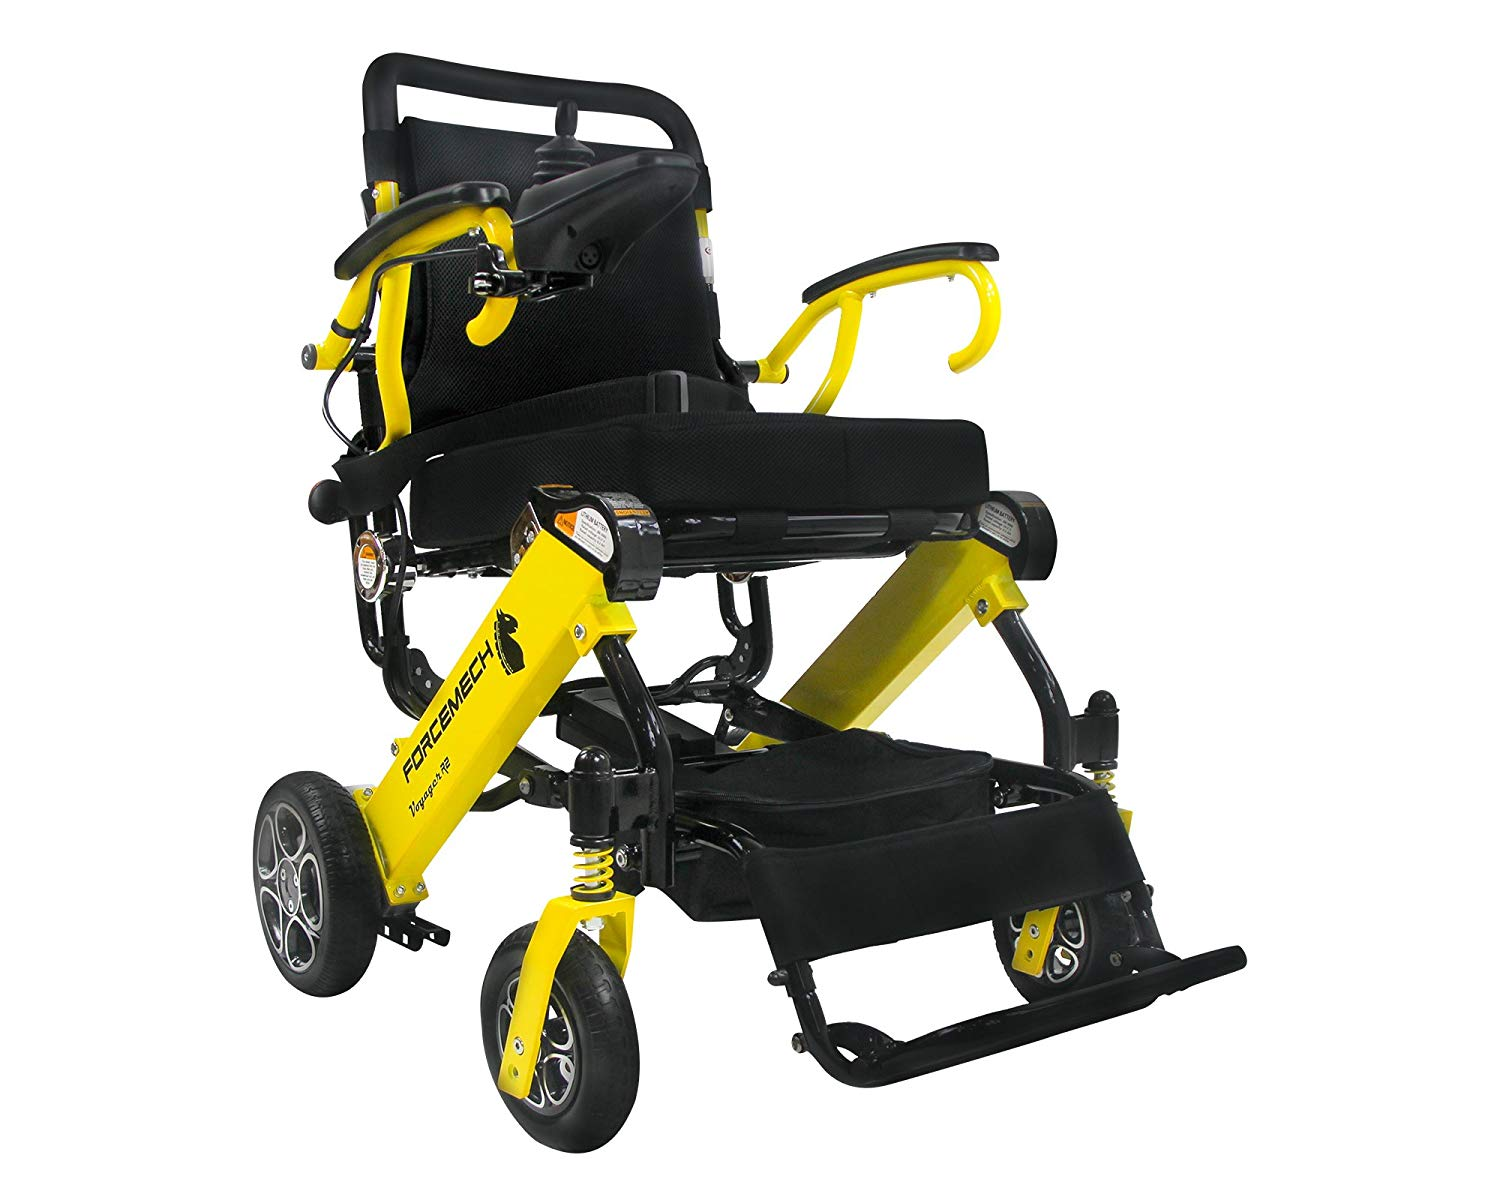 forcemech voyager r2 power folding wheelchair review